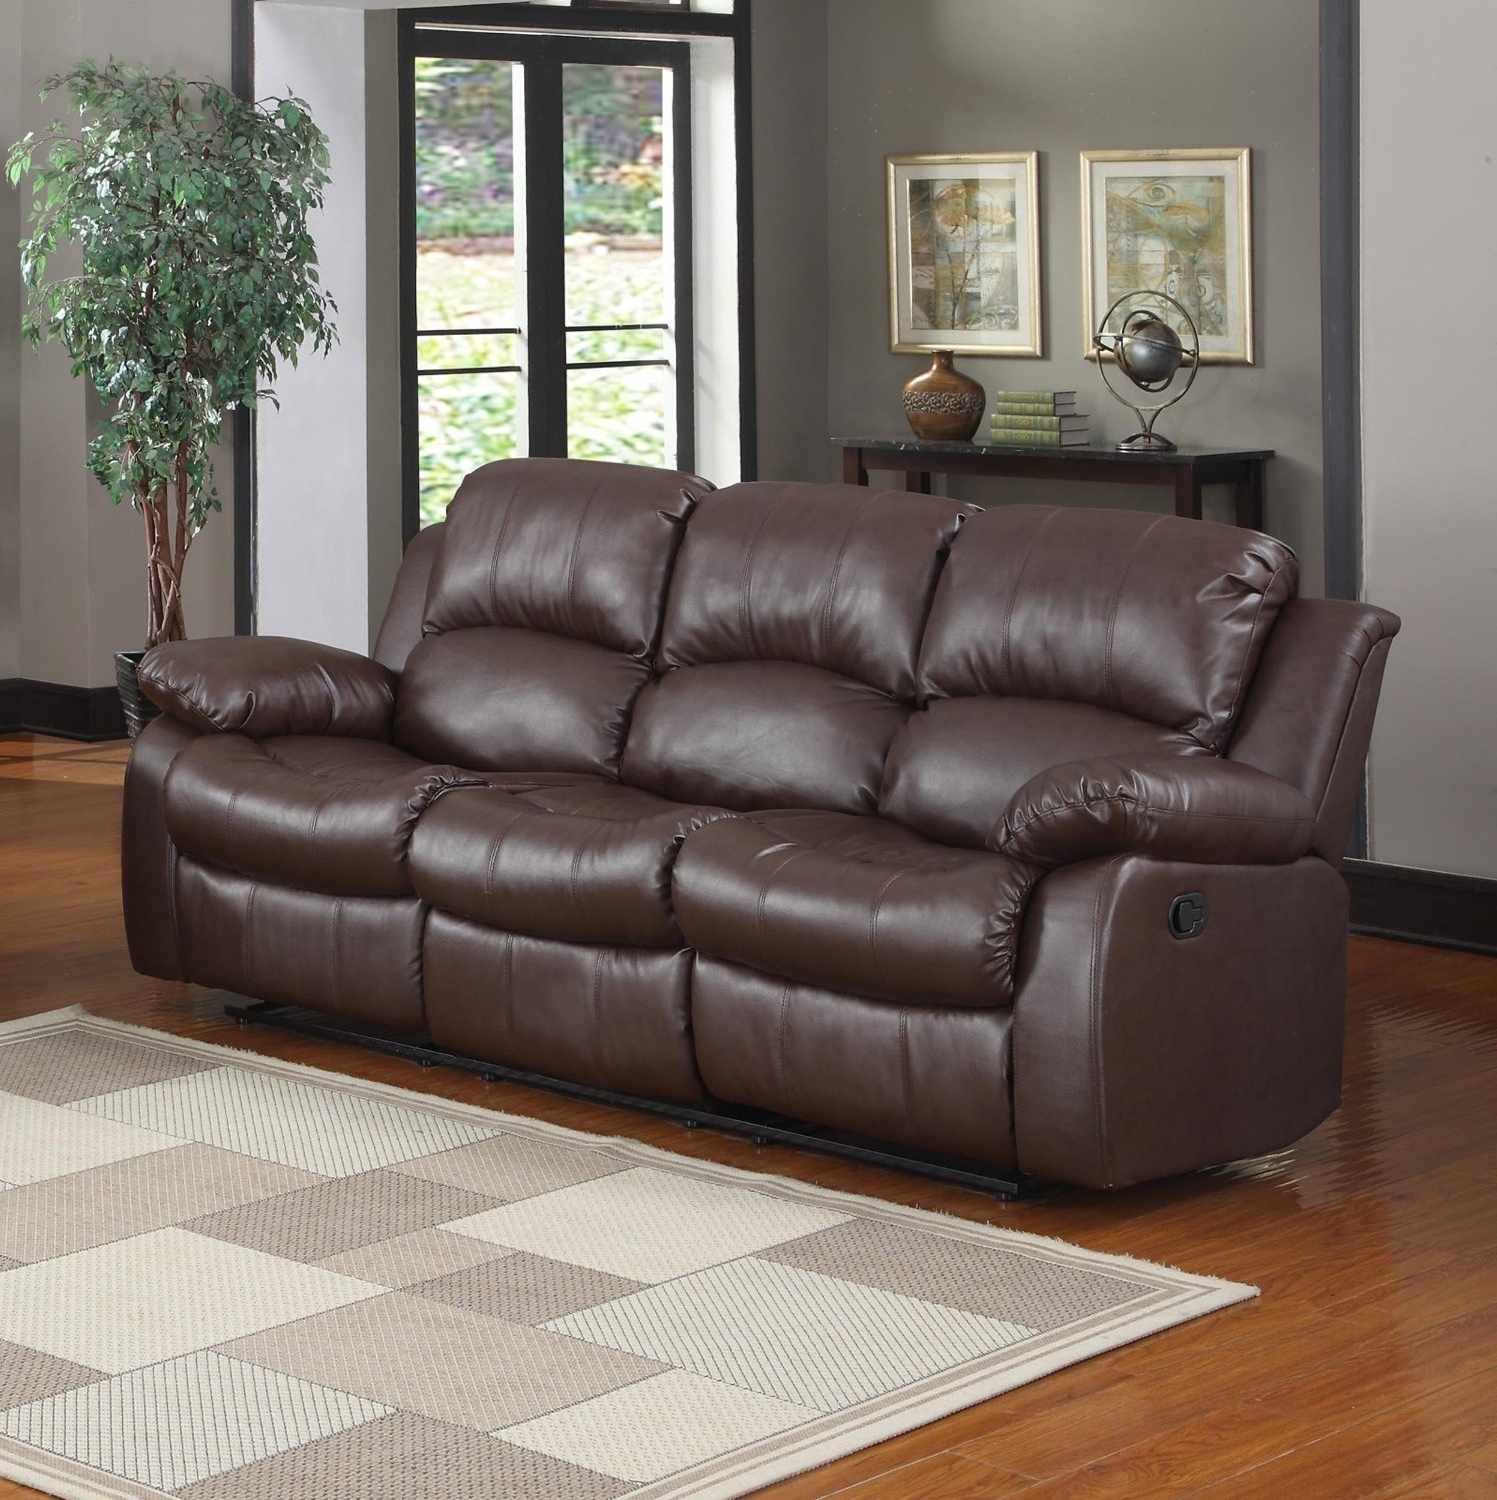 2018 Amazon: Bonded Leather Double Recliner Sofa Living Room With Regard To Recliner Sofas (View 4 of 15)